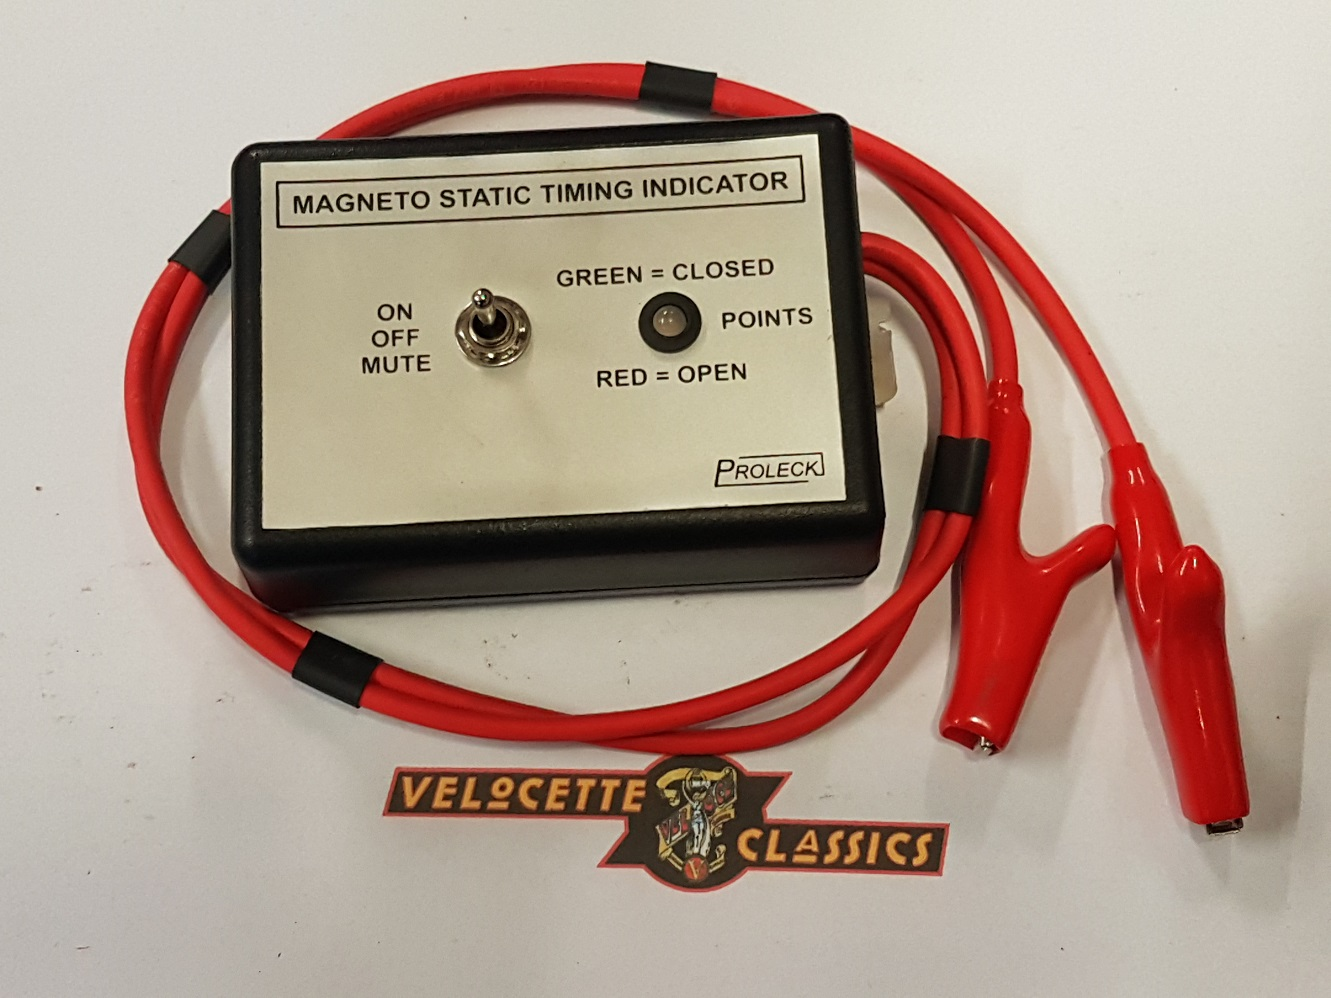 Velocette Parts for Sale - Magneto Static Timing Tool